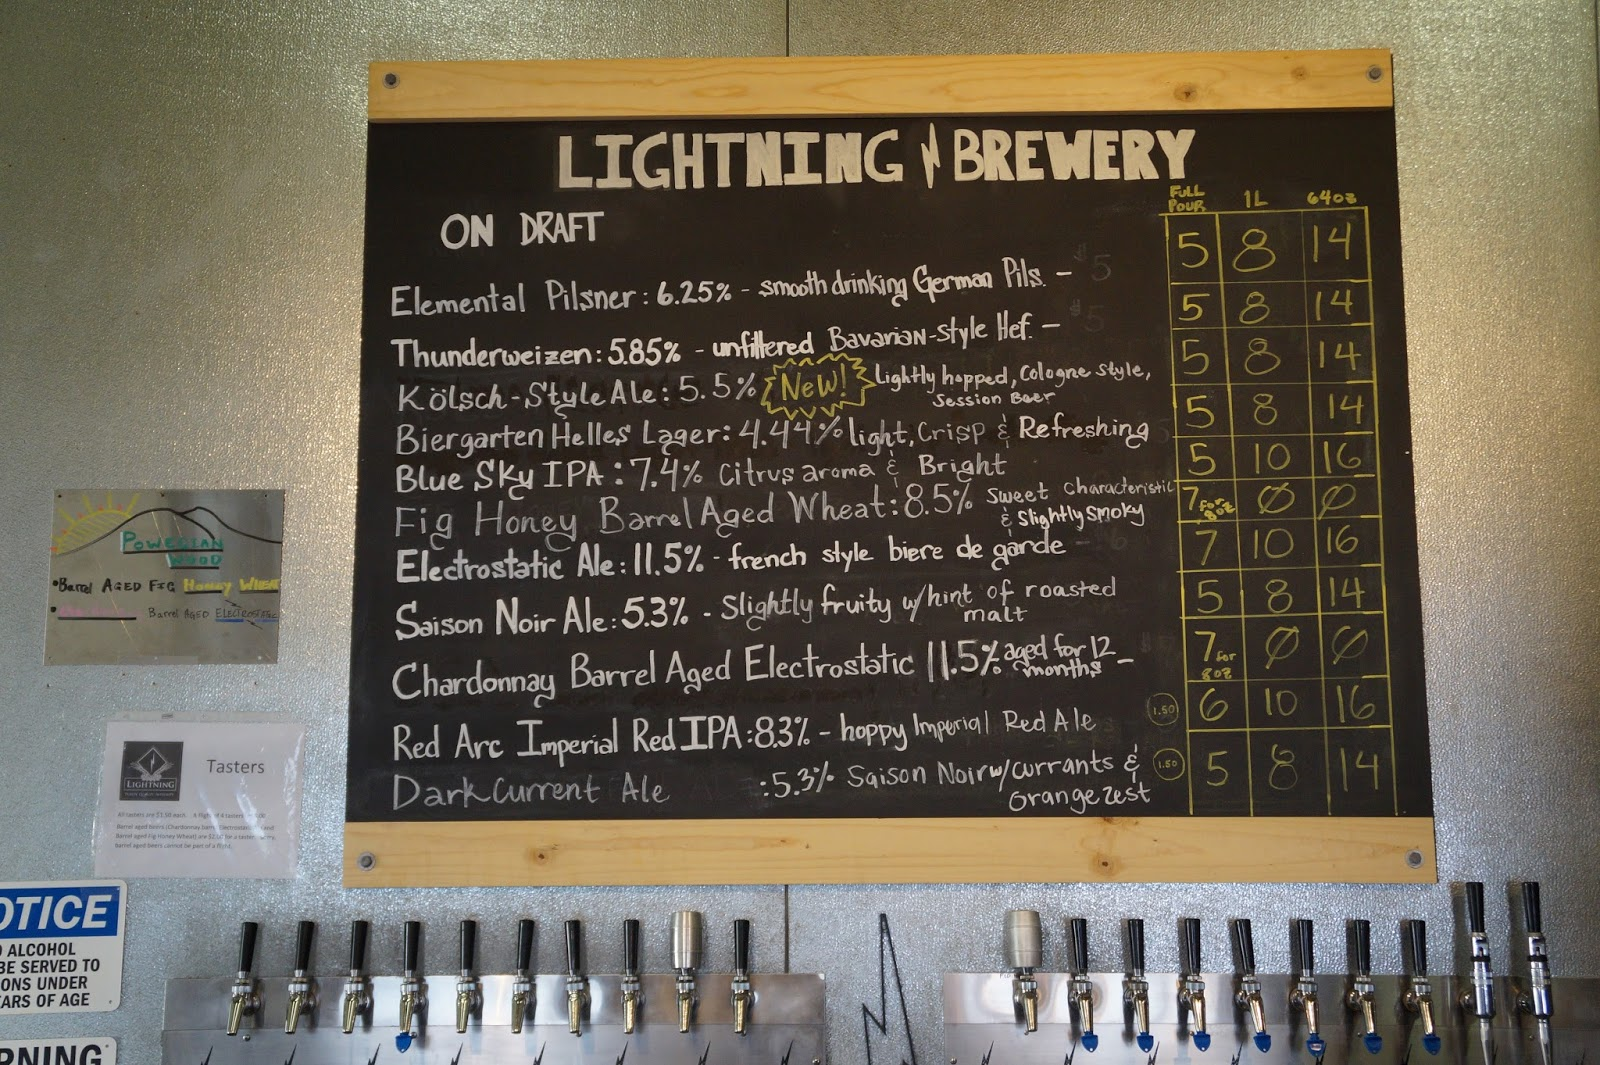 Lightning Brewery, Beer List, On Tap